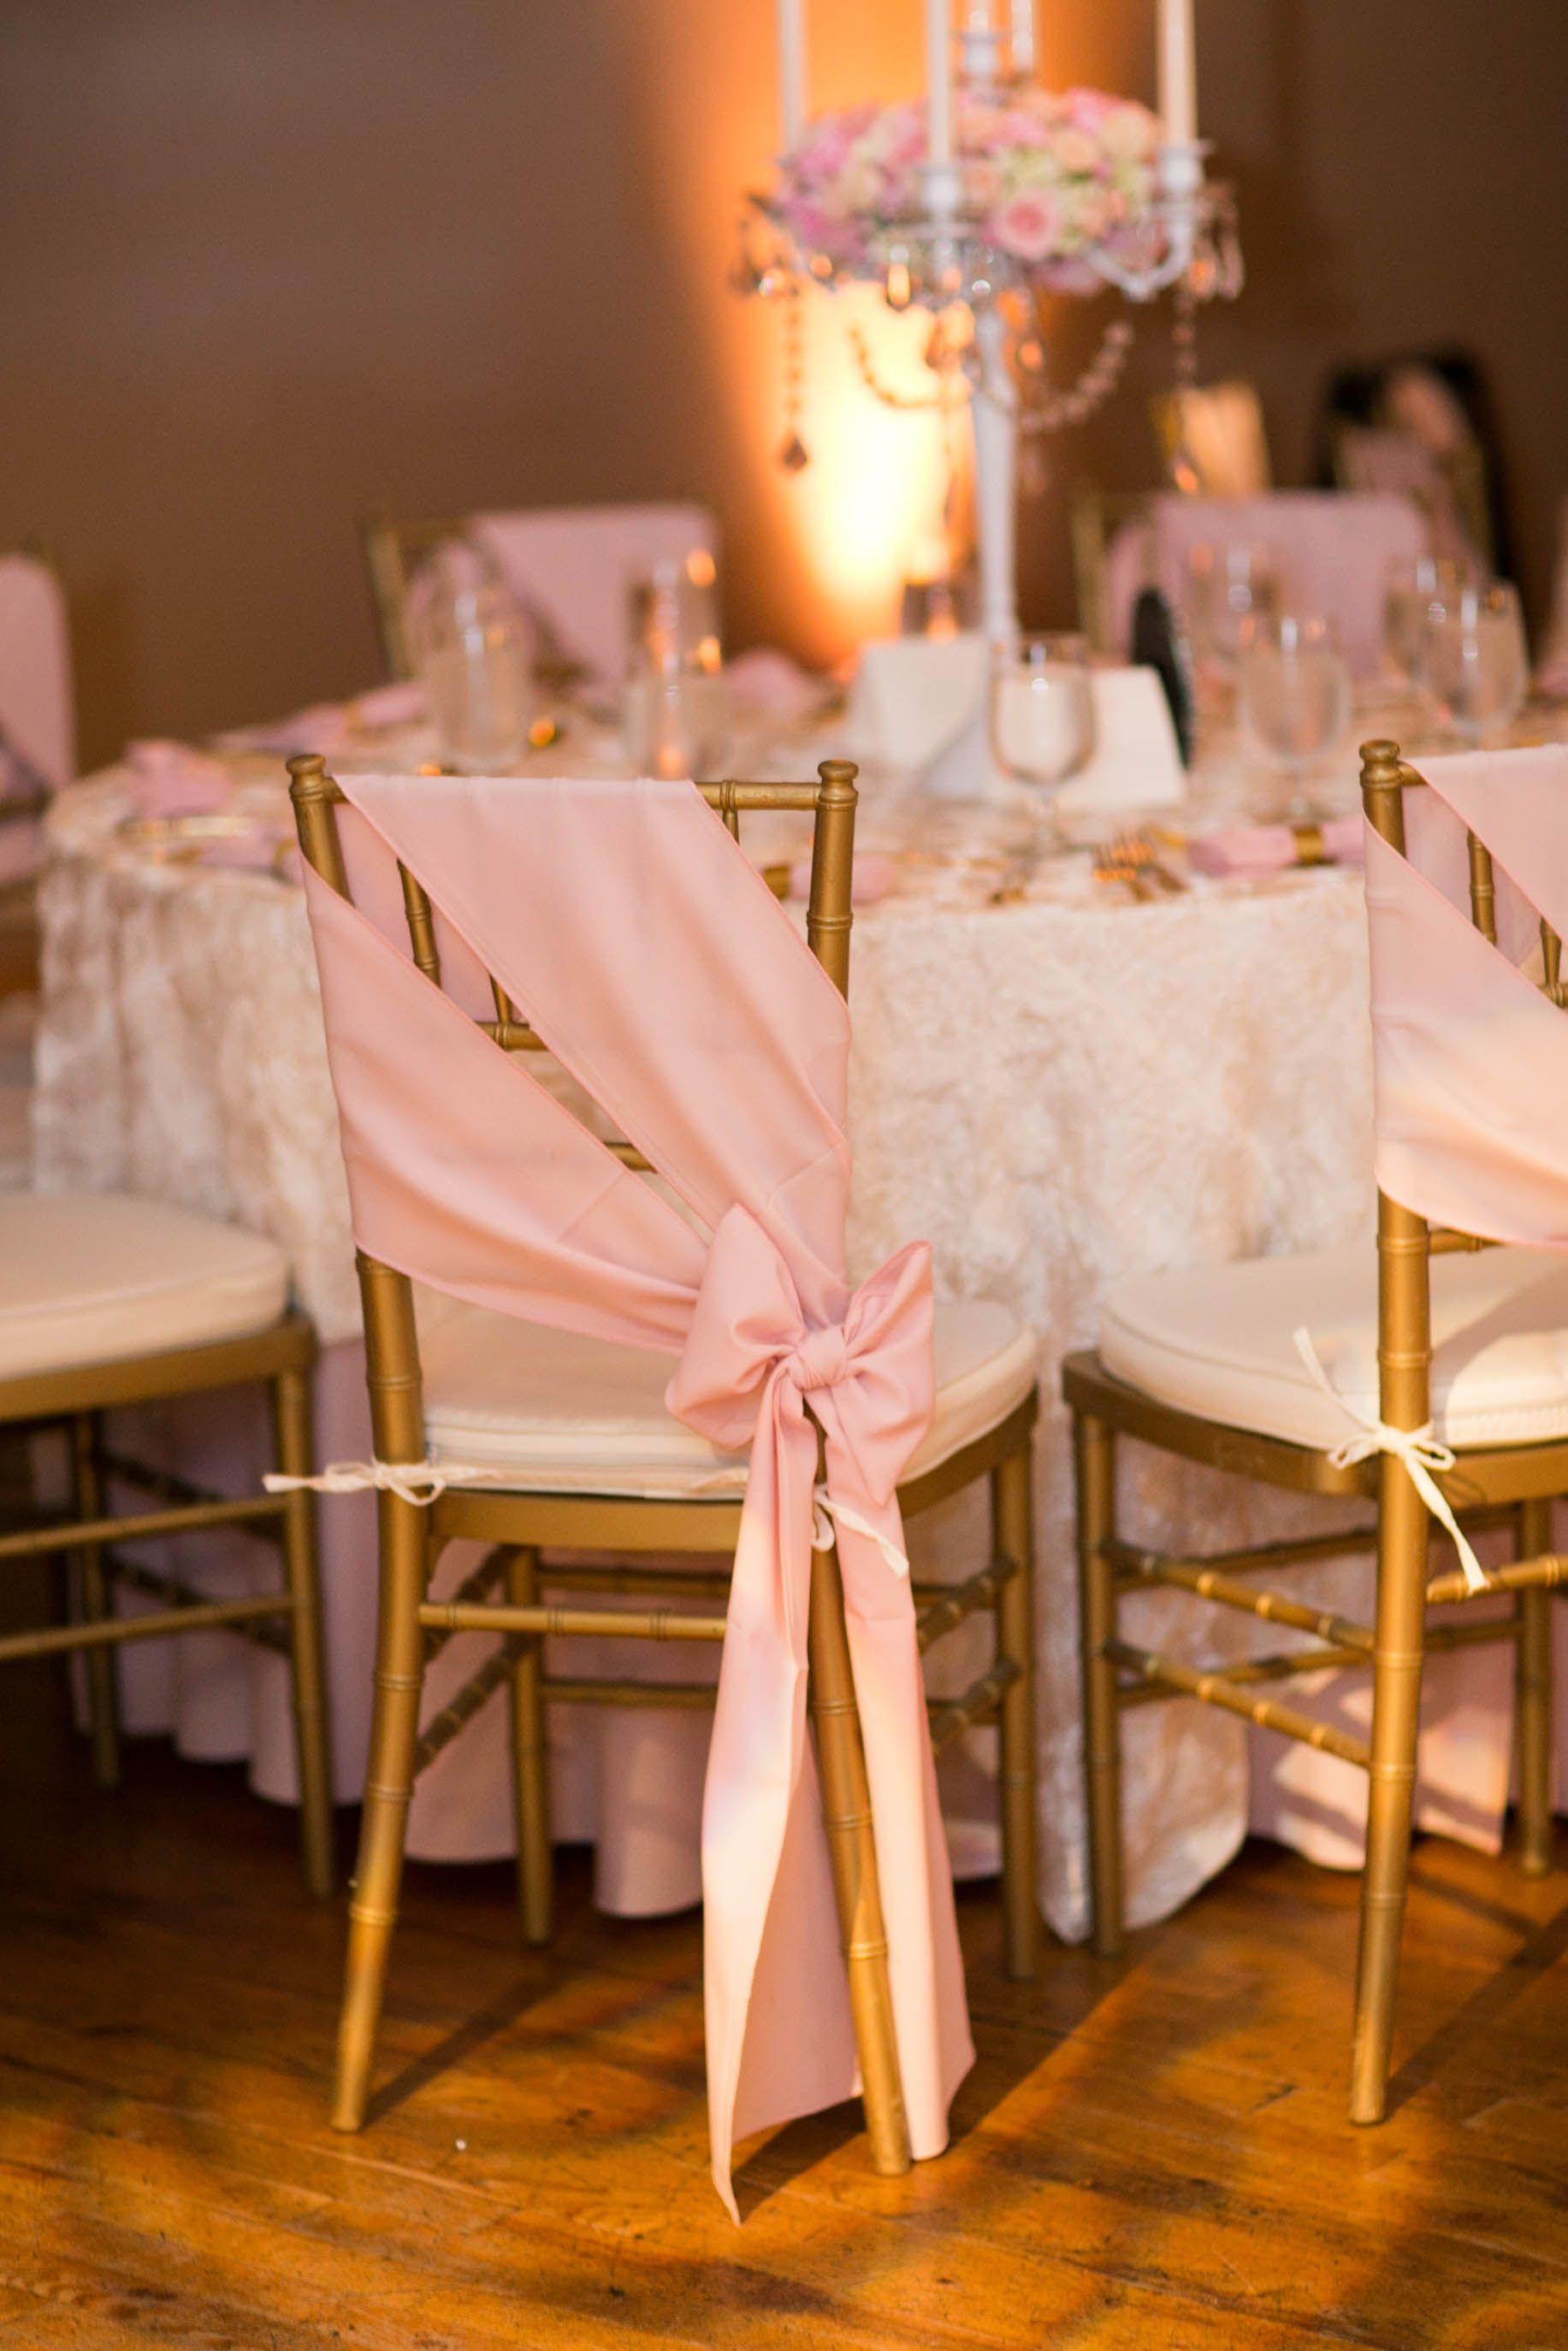 Brocade event design nashville weddings avenue pink for Table and chair decorations for weddings